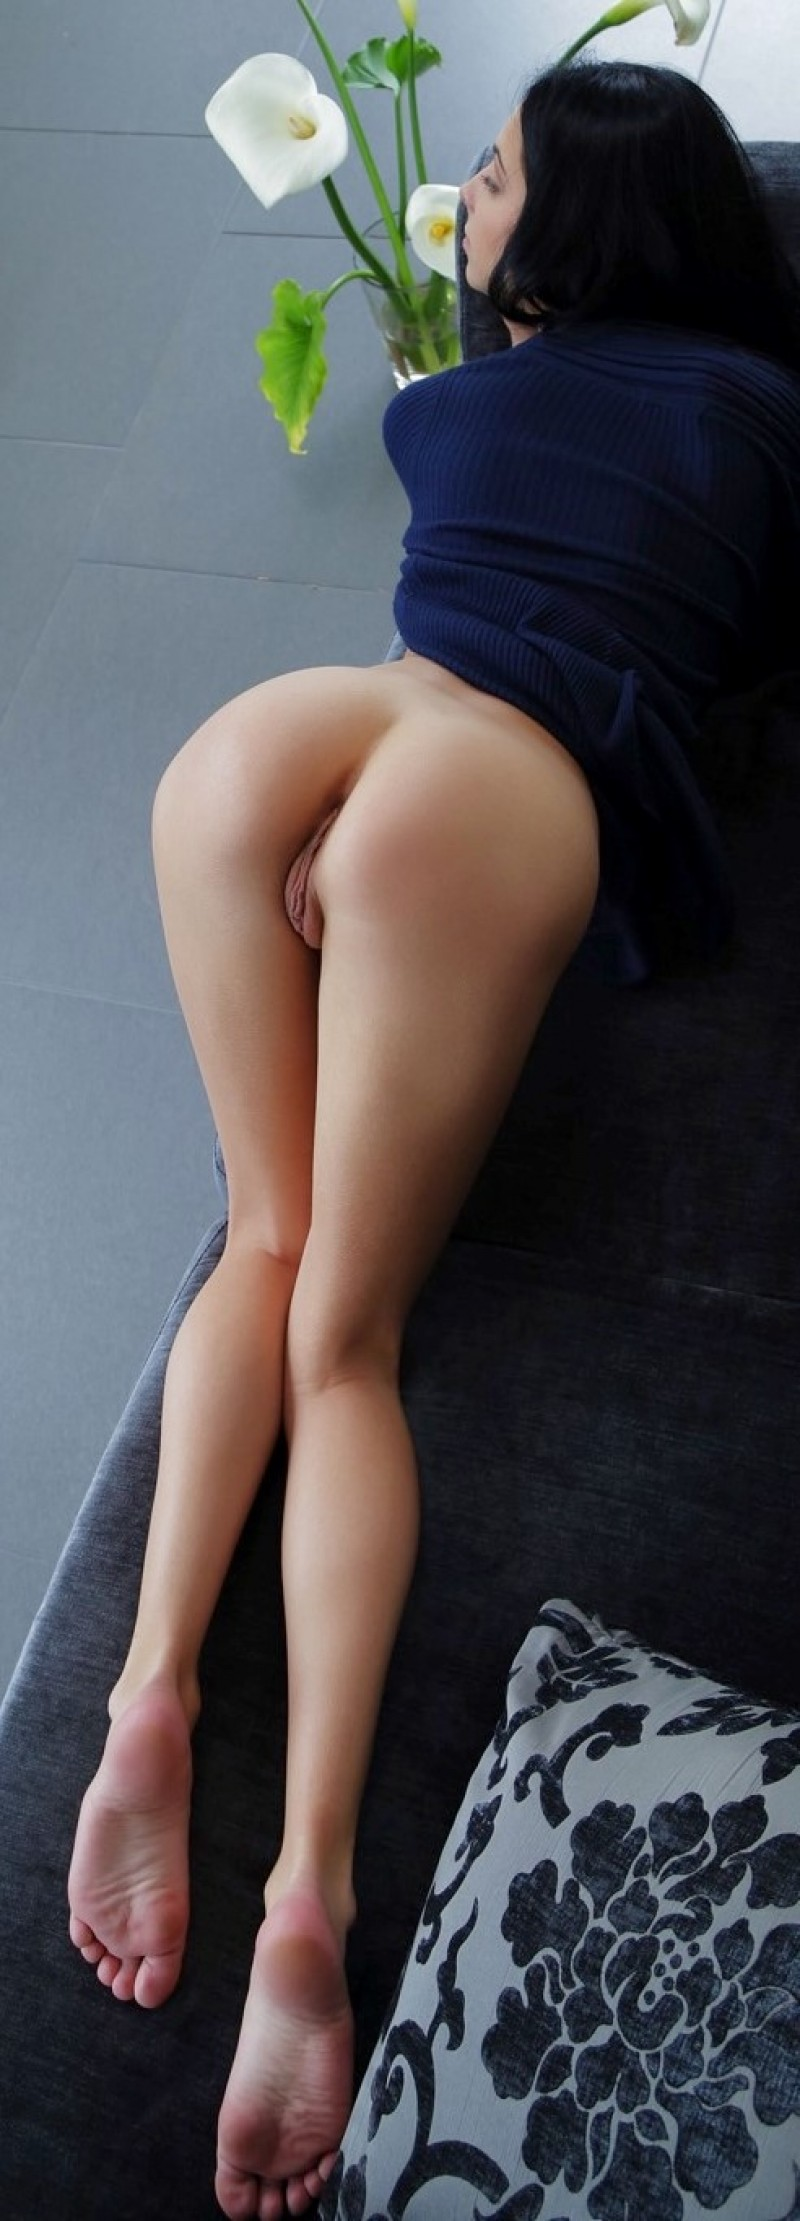 maria ozawa shows her hot cleavage outdoor full video xvideos com